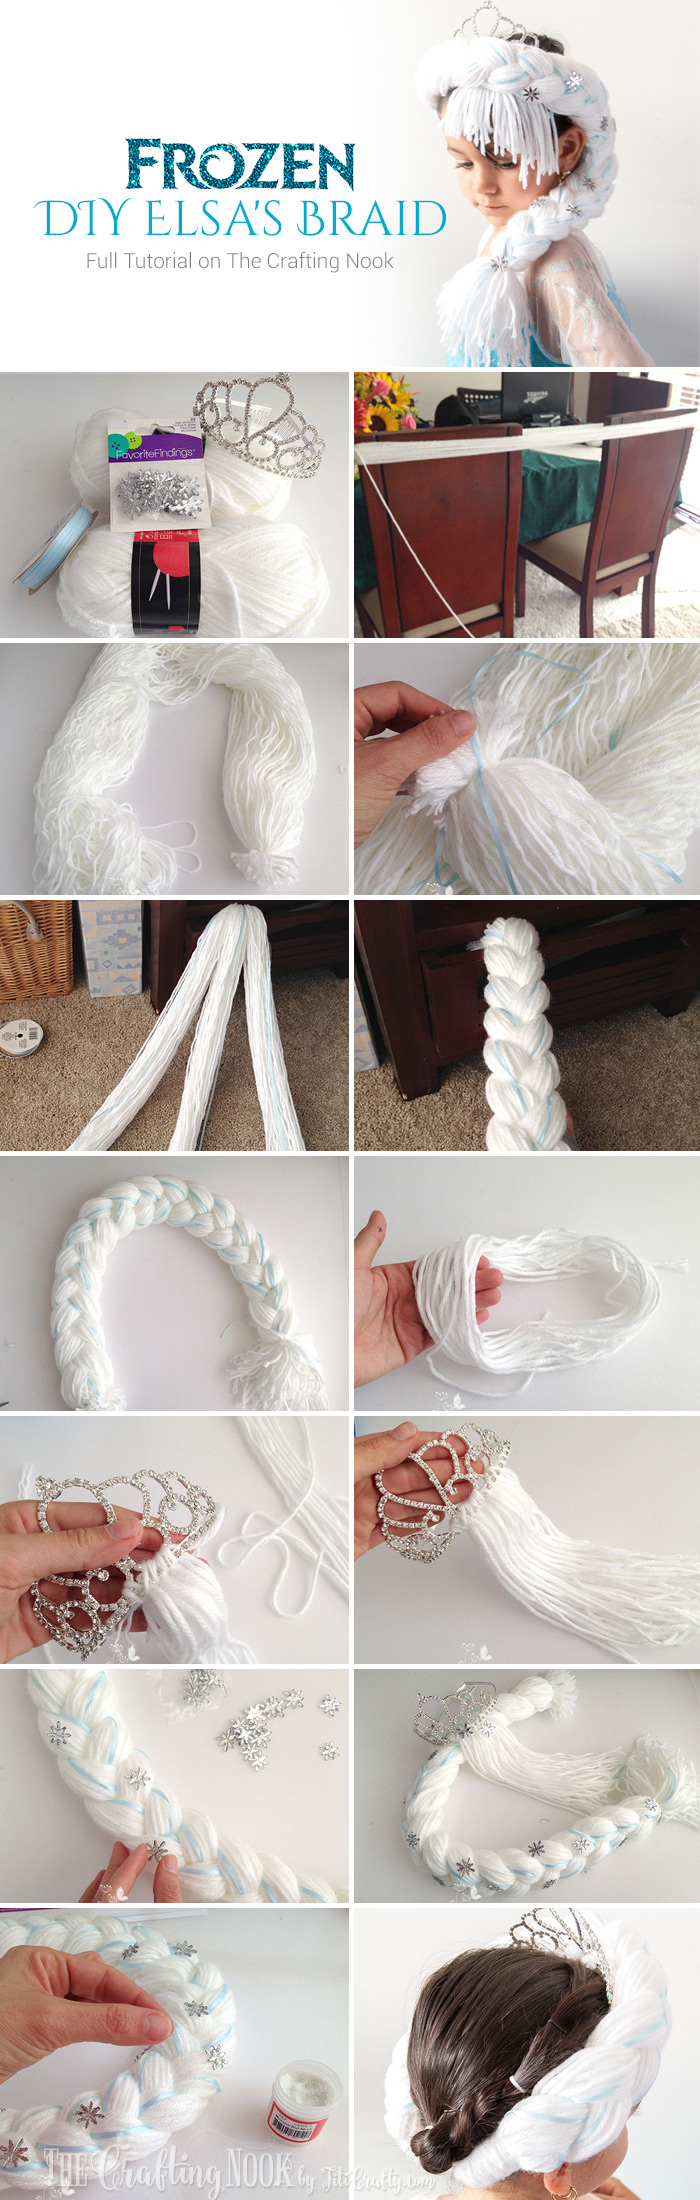 Cute Frozen DIY Elsa's Braid #frozen #frozenfever #frozenparty